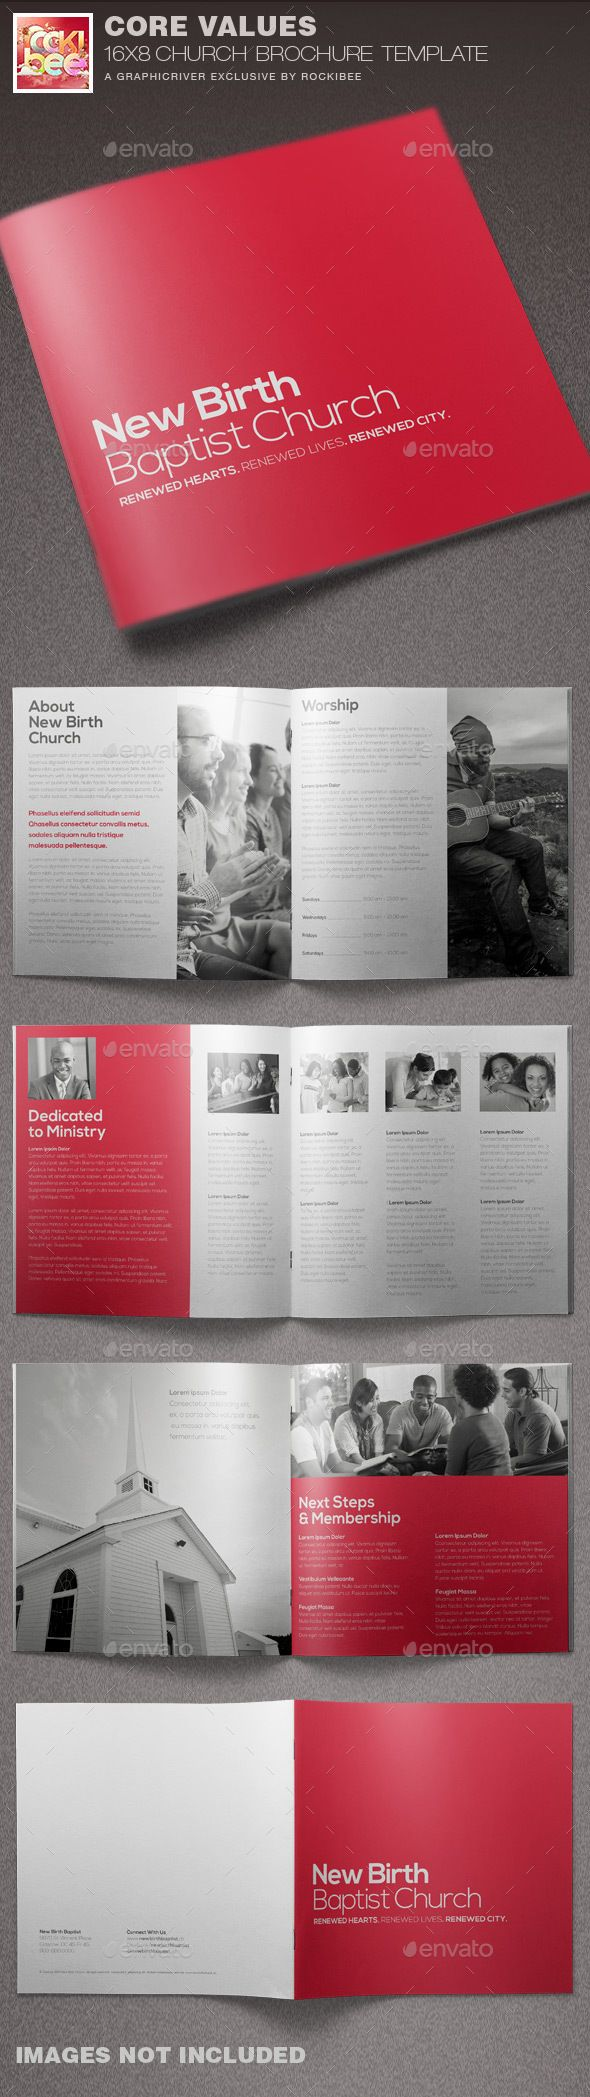 PSD Church Brochure Template #missions brochure #modern #non-profit • Click here to download ! http://graphicriver.net/item/core-values-church-brochure-template/15784208?s_rank=371&ref=pxcr